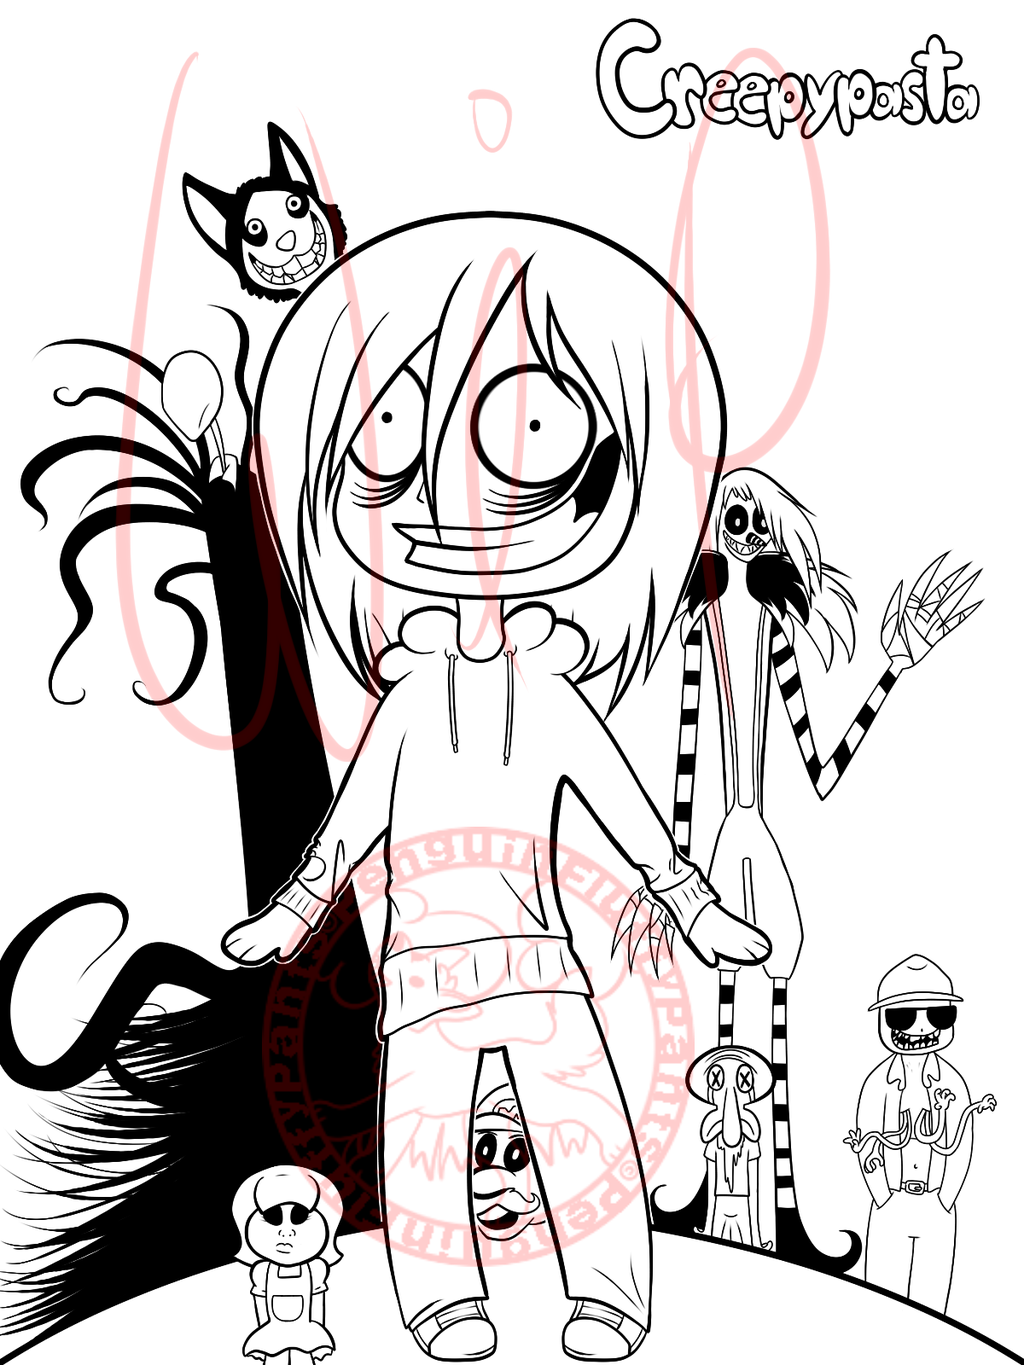 creepypasta coloring pages CreepyPasta Coloring Page WIP by PenguinFluffyPants.deviantart. creepypasta coloring pages